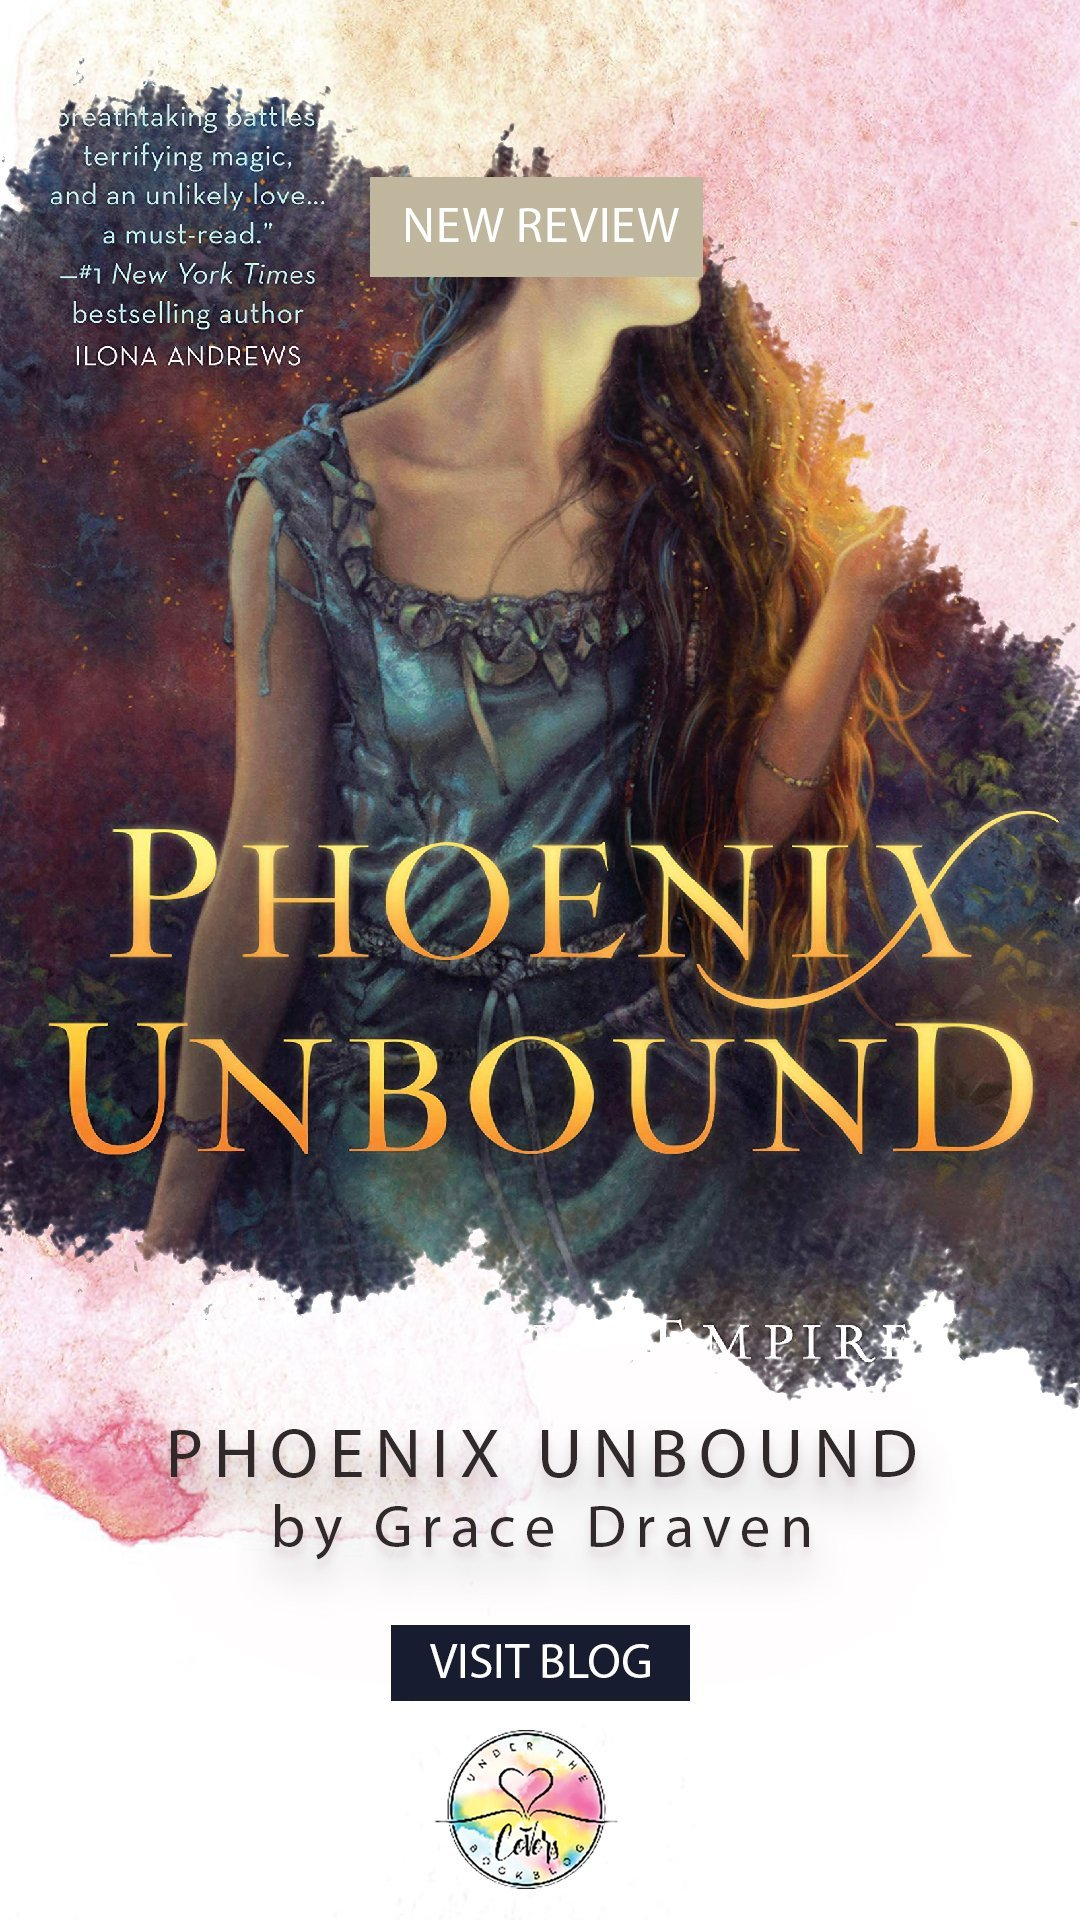 ARC Review: Phoenix Unbound by Grace Draven